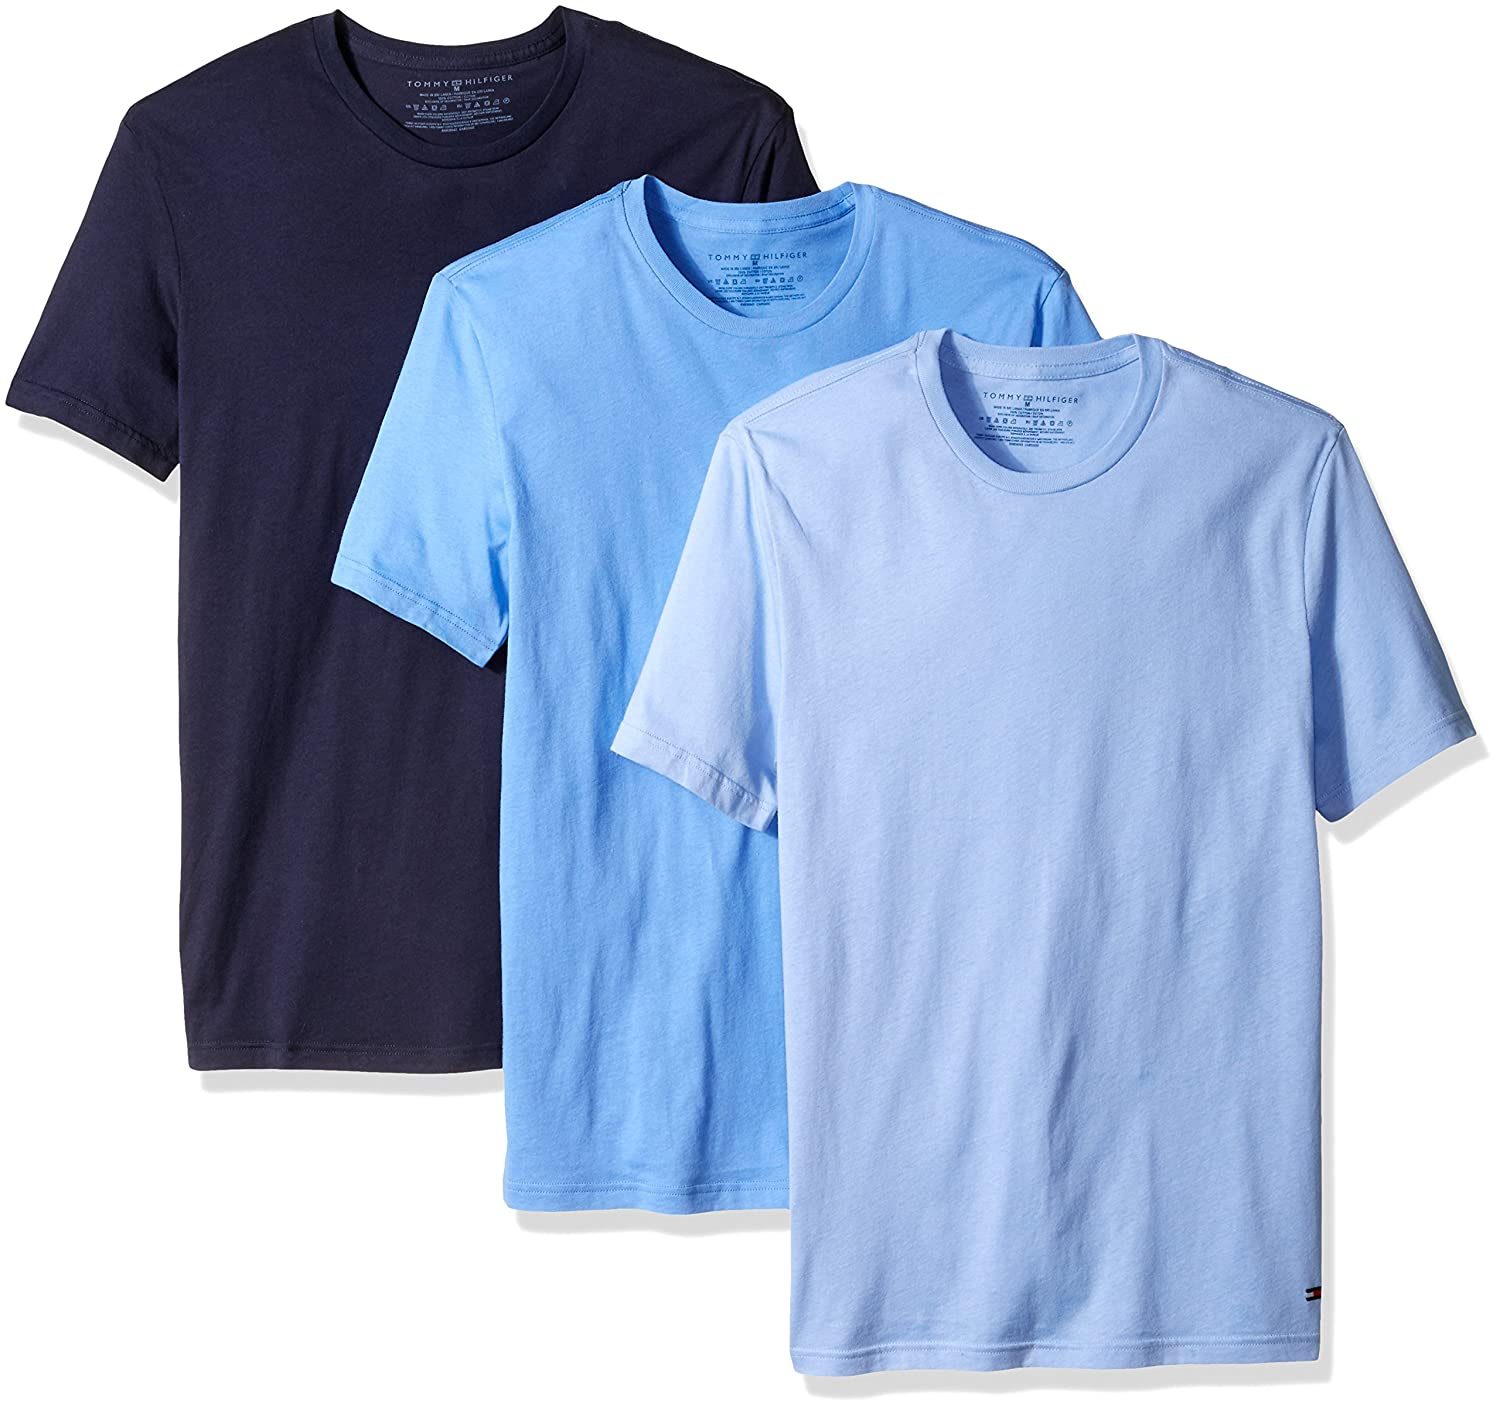 Tommy Hilfiger Men's 3-Pack Cotton Crew-Neck T-Shirt 09TCR01